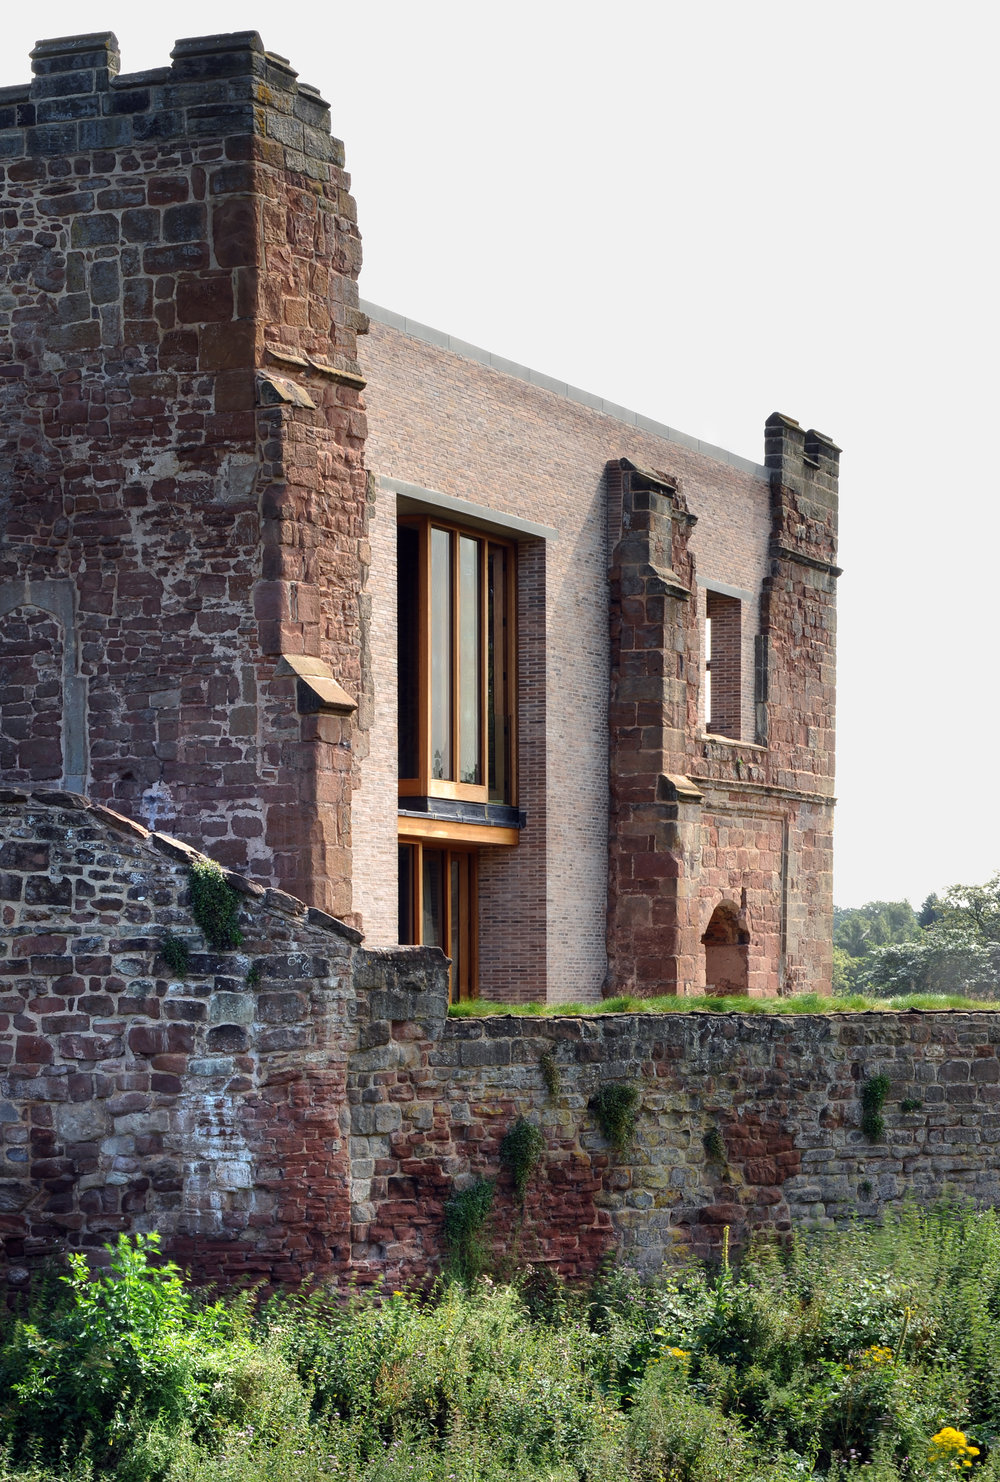 12th century meets 21st century. Astley Castle was awarded the Stirling Prize in 2013 for creativity, preservation and conservation / Photo: Philip Vile